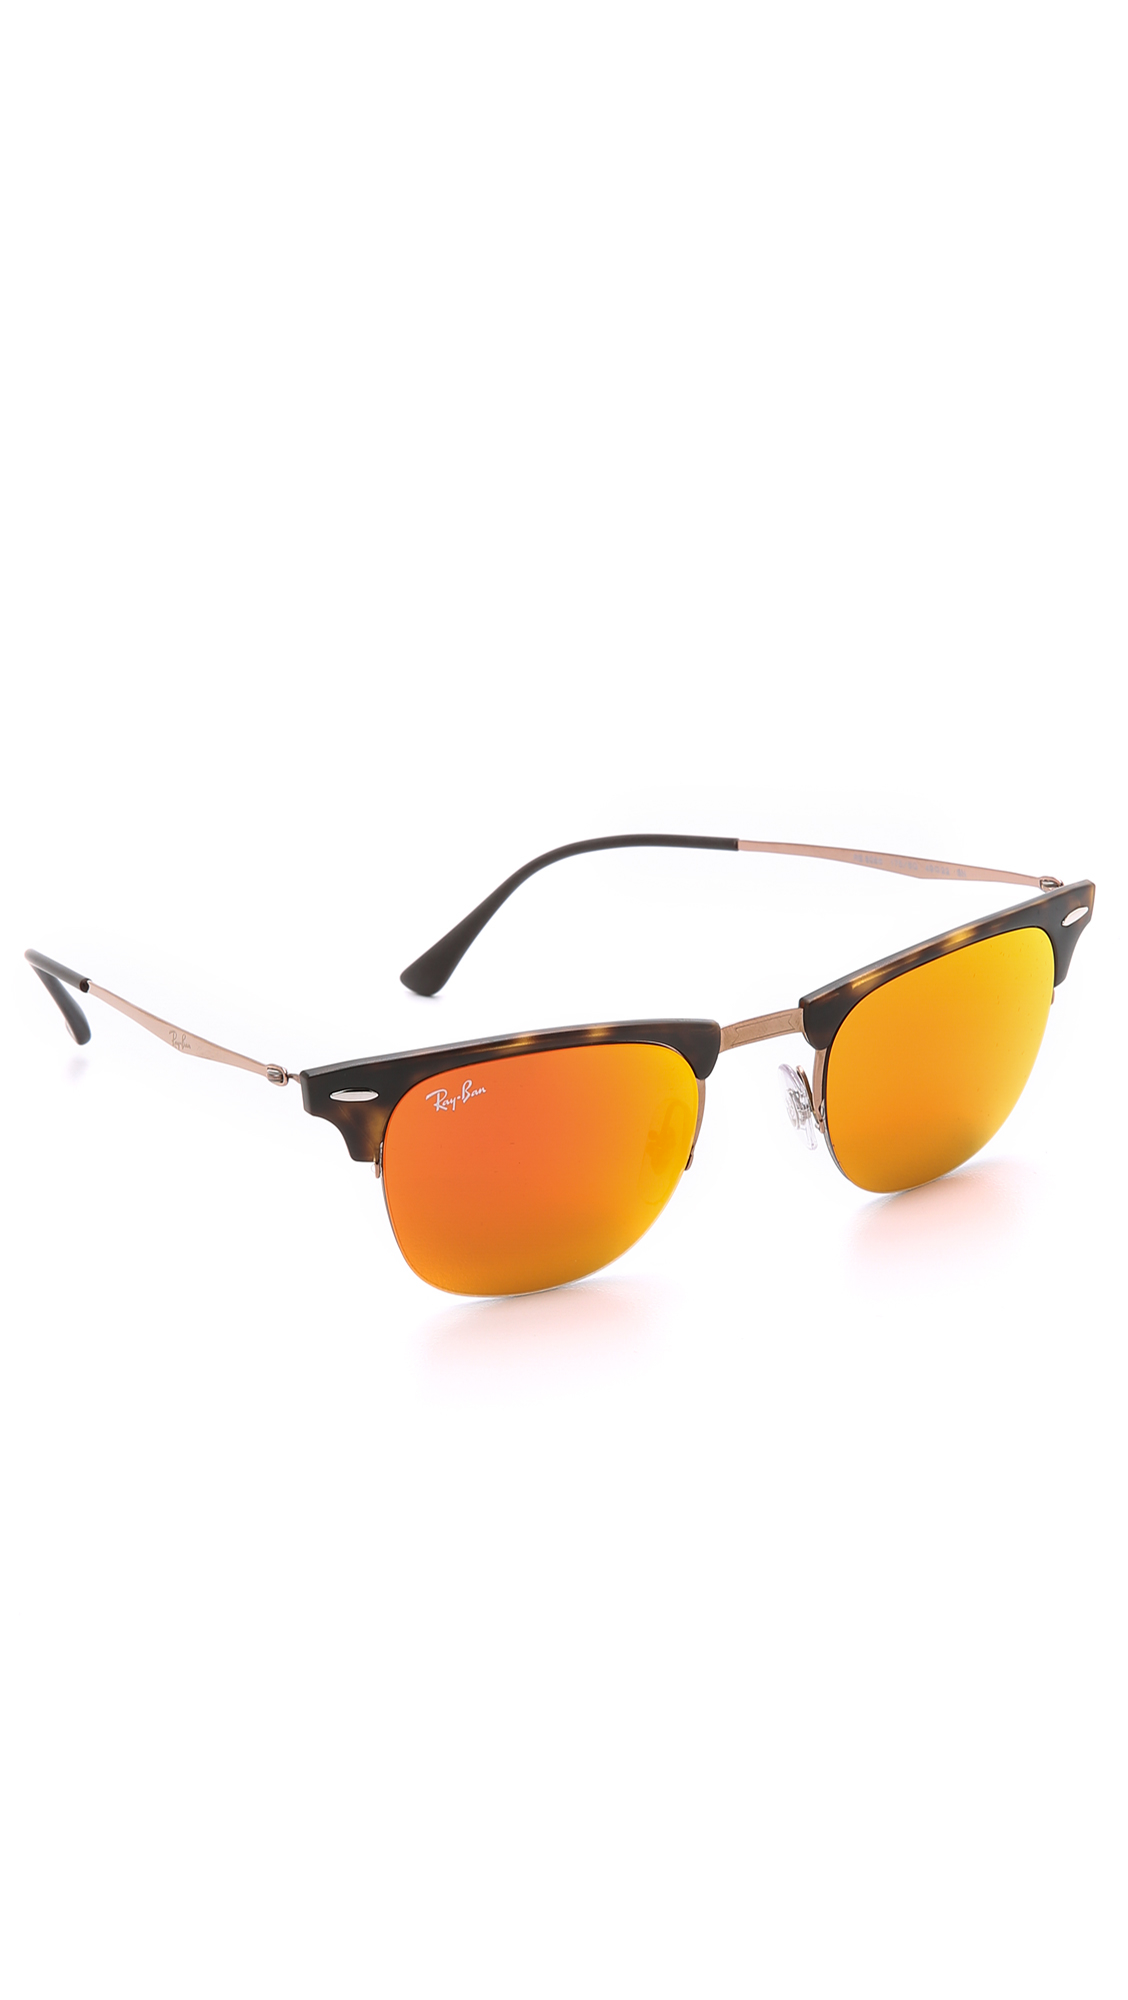 9d1eef31e5653 ... coupon code for lyst ray ban lightweight clubmaster sunglasses with  flash lens in brown for men